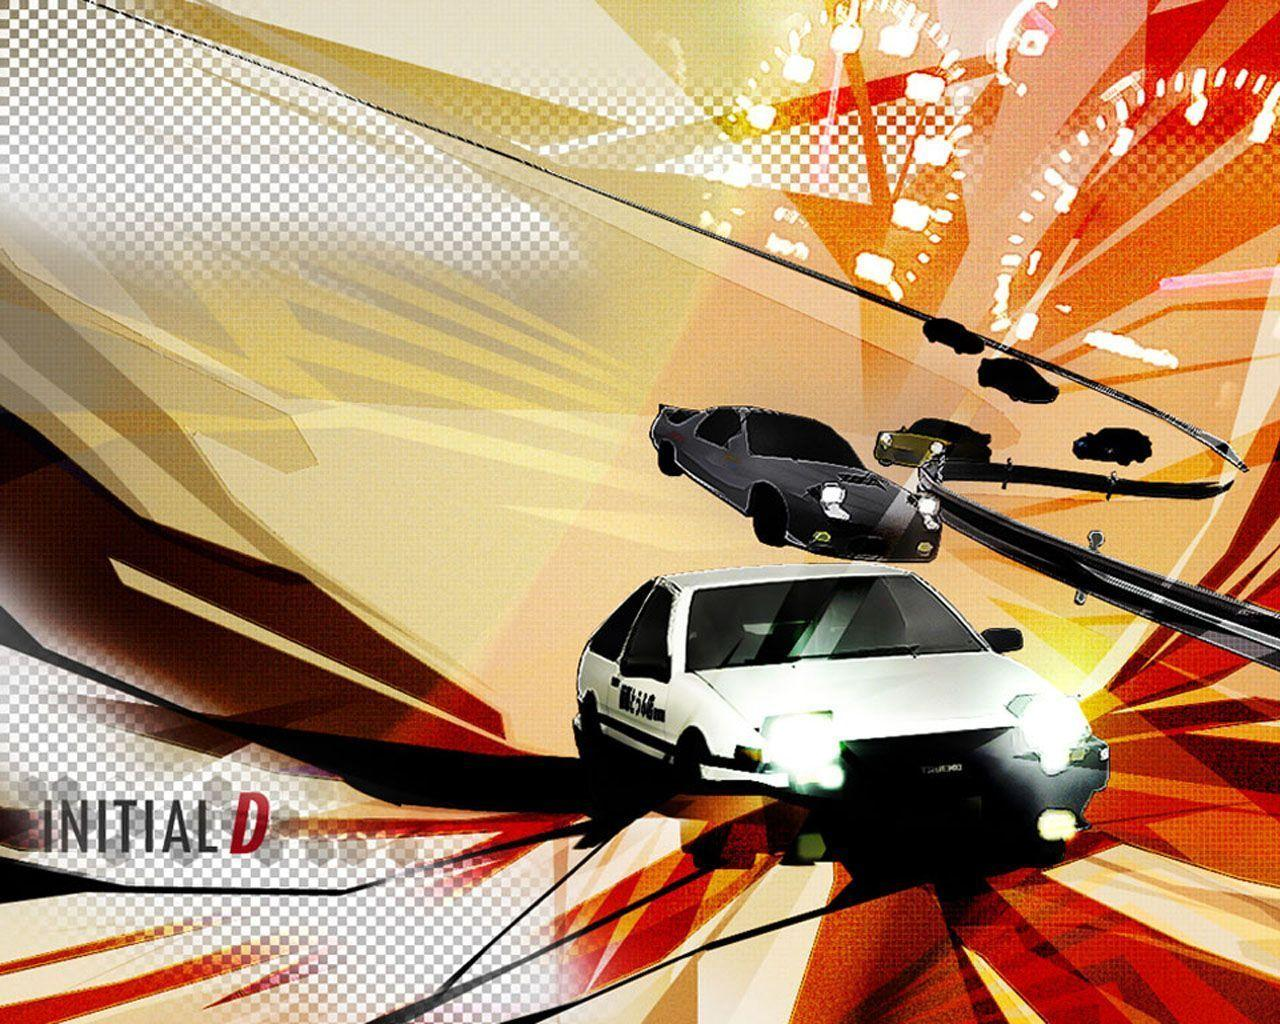 Wallpapers Initial D 1280x1024